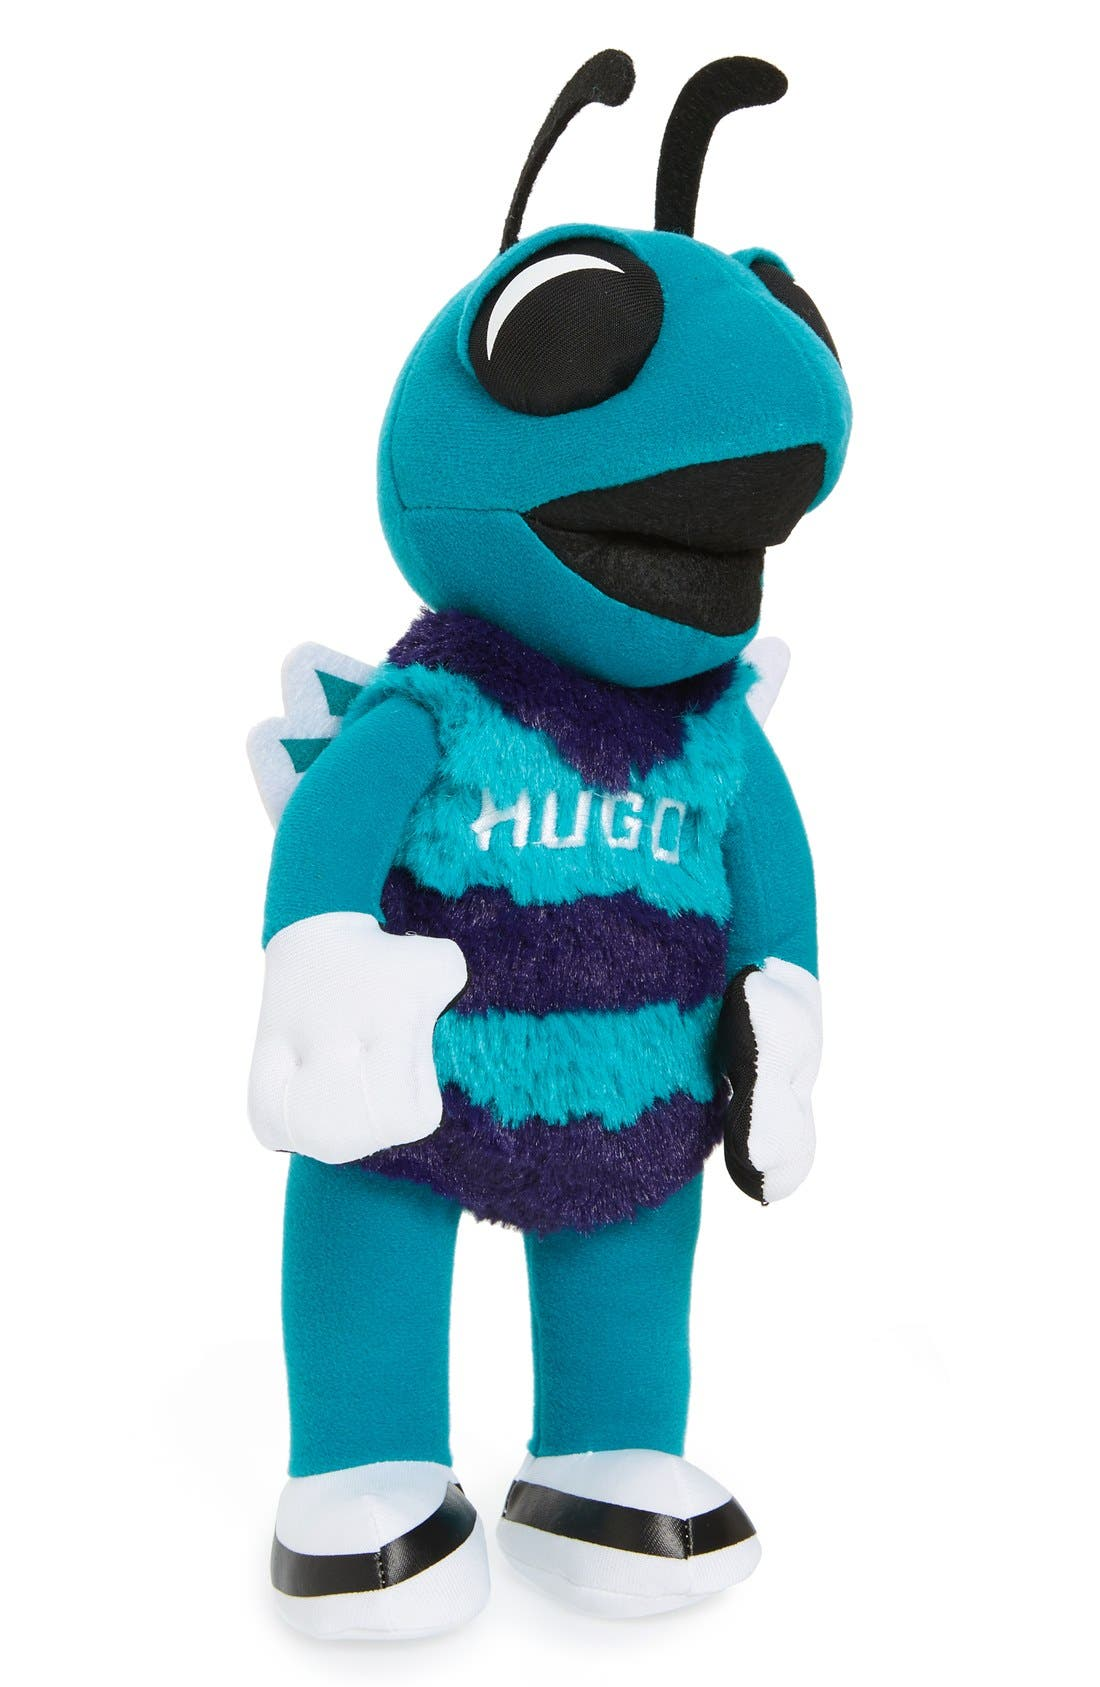 Bleacher Creatures Hornets - Hugo Plush Toy